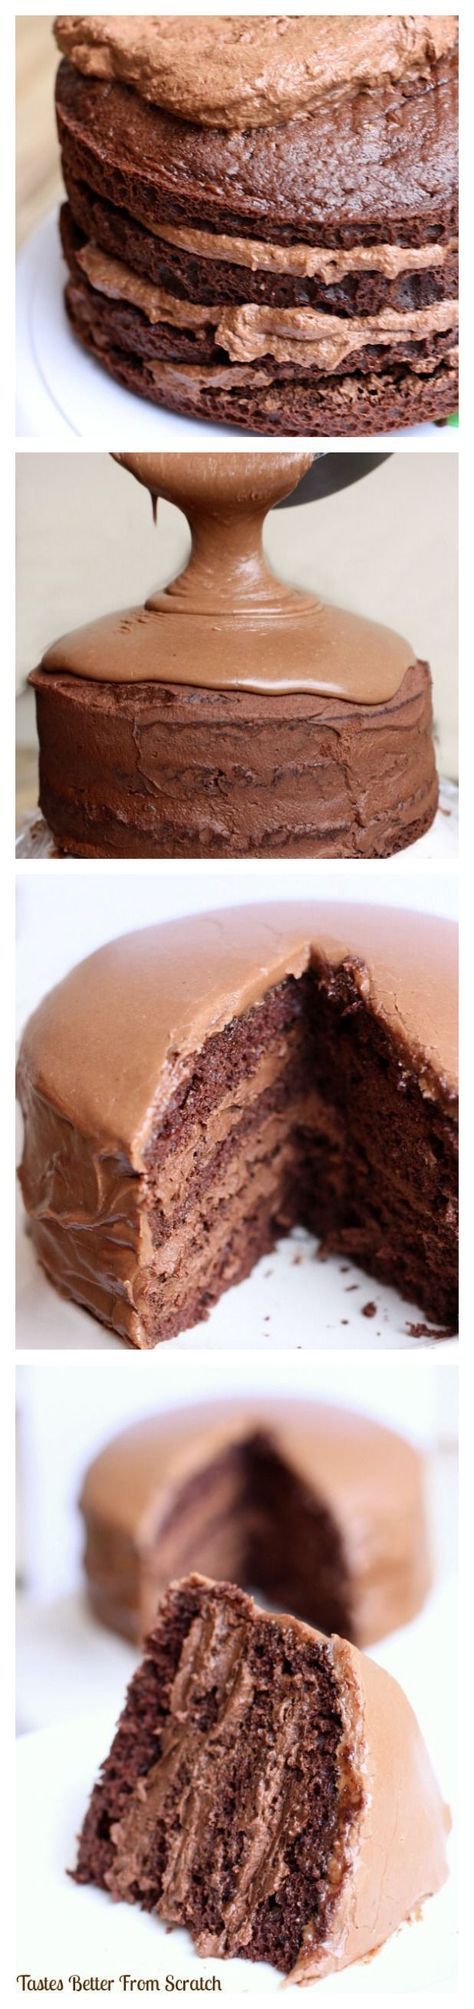 The BEST Chocolate Cake with Chocolate Mousse Filling! My favorite chocolate cake recipe with dark choc mousse fillling and warm frosting poured on top! AMAZING! Recipe from http://TastesBetterFromScratch.com